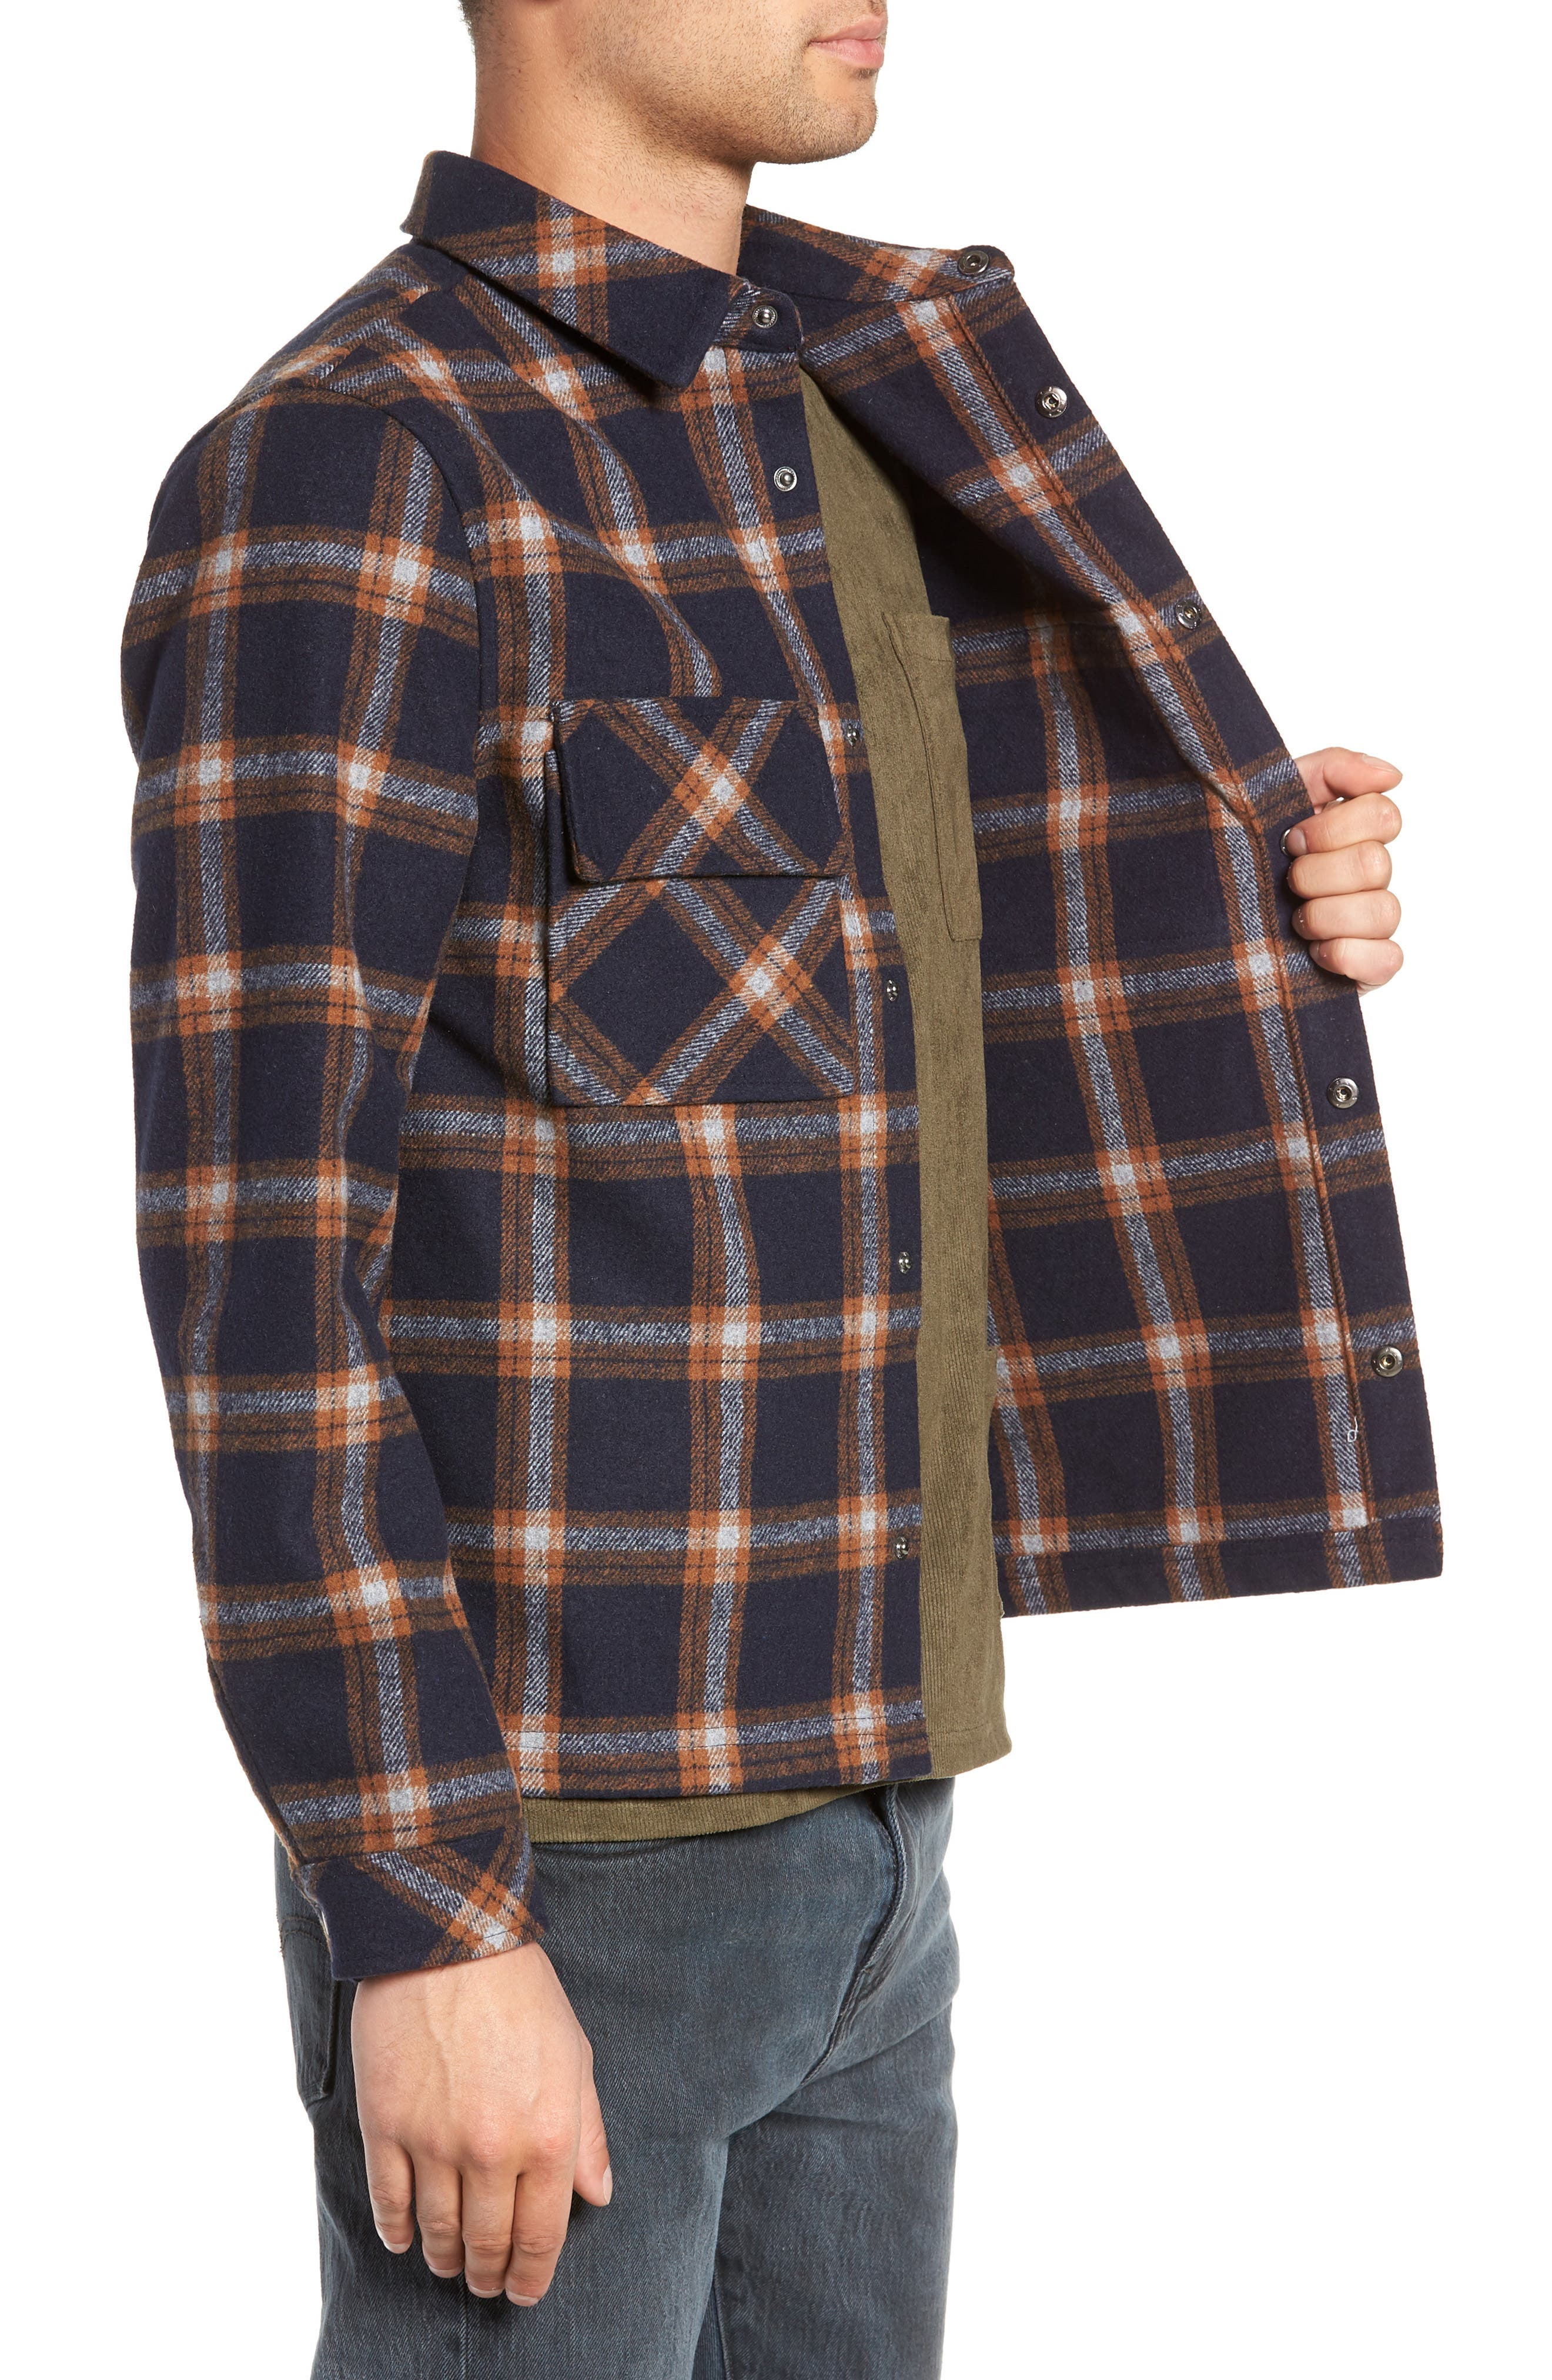 NATIVE YOUTH,                             Check Flannel Shirt,                             Alternate thumbnail 4, color,                             NAVY